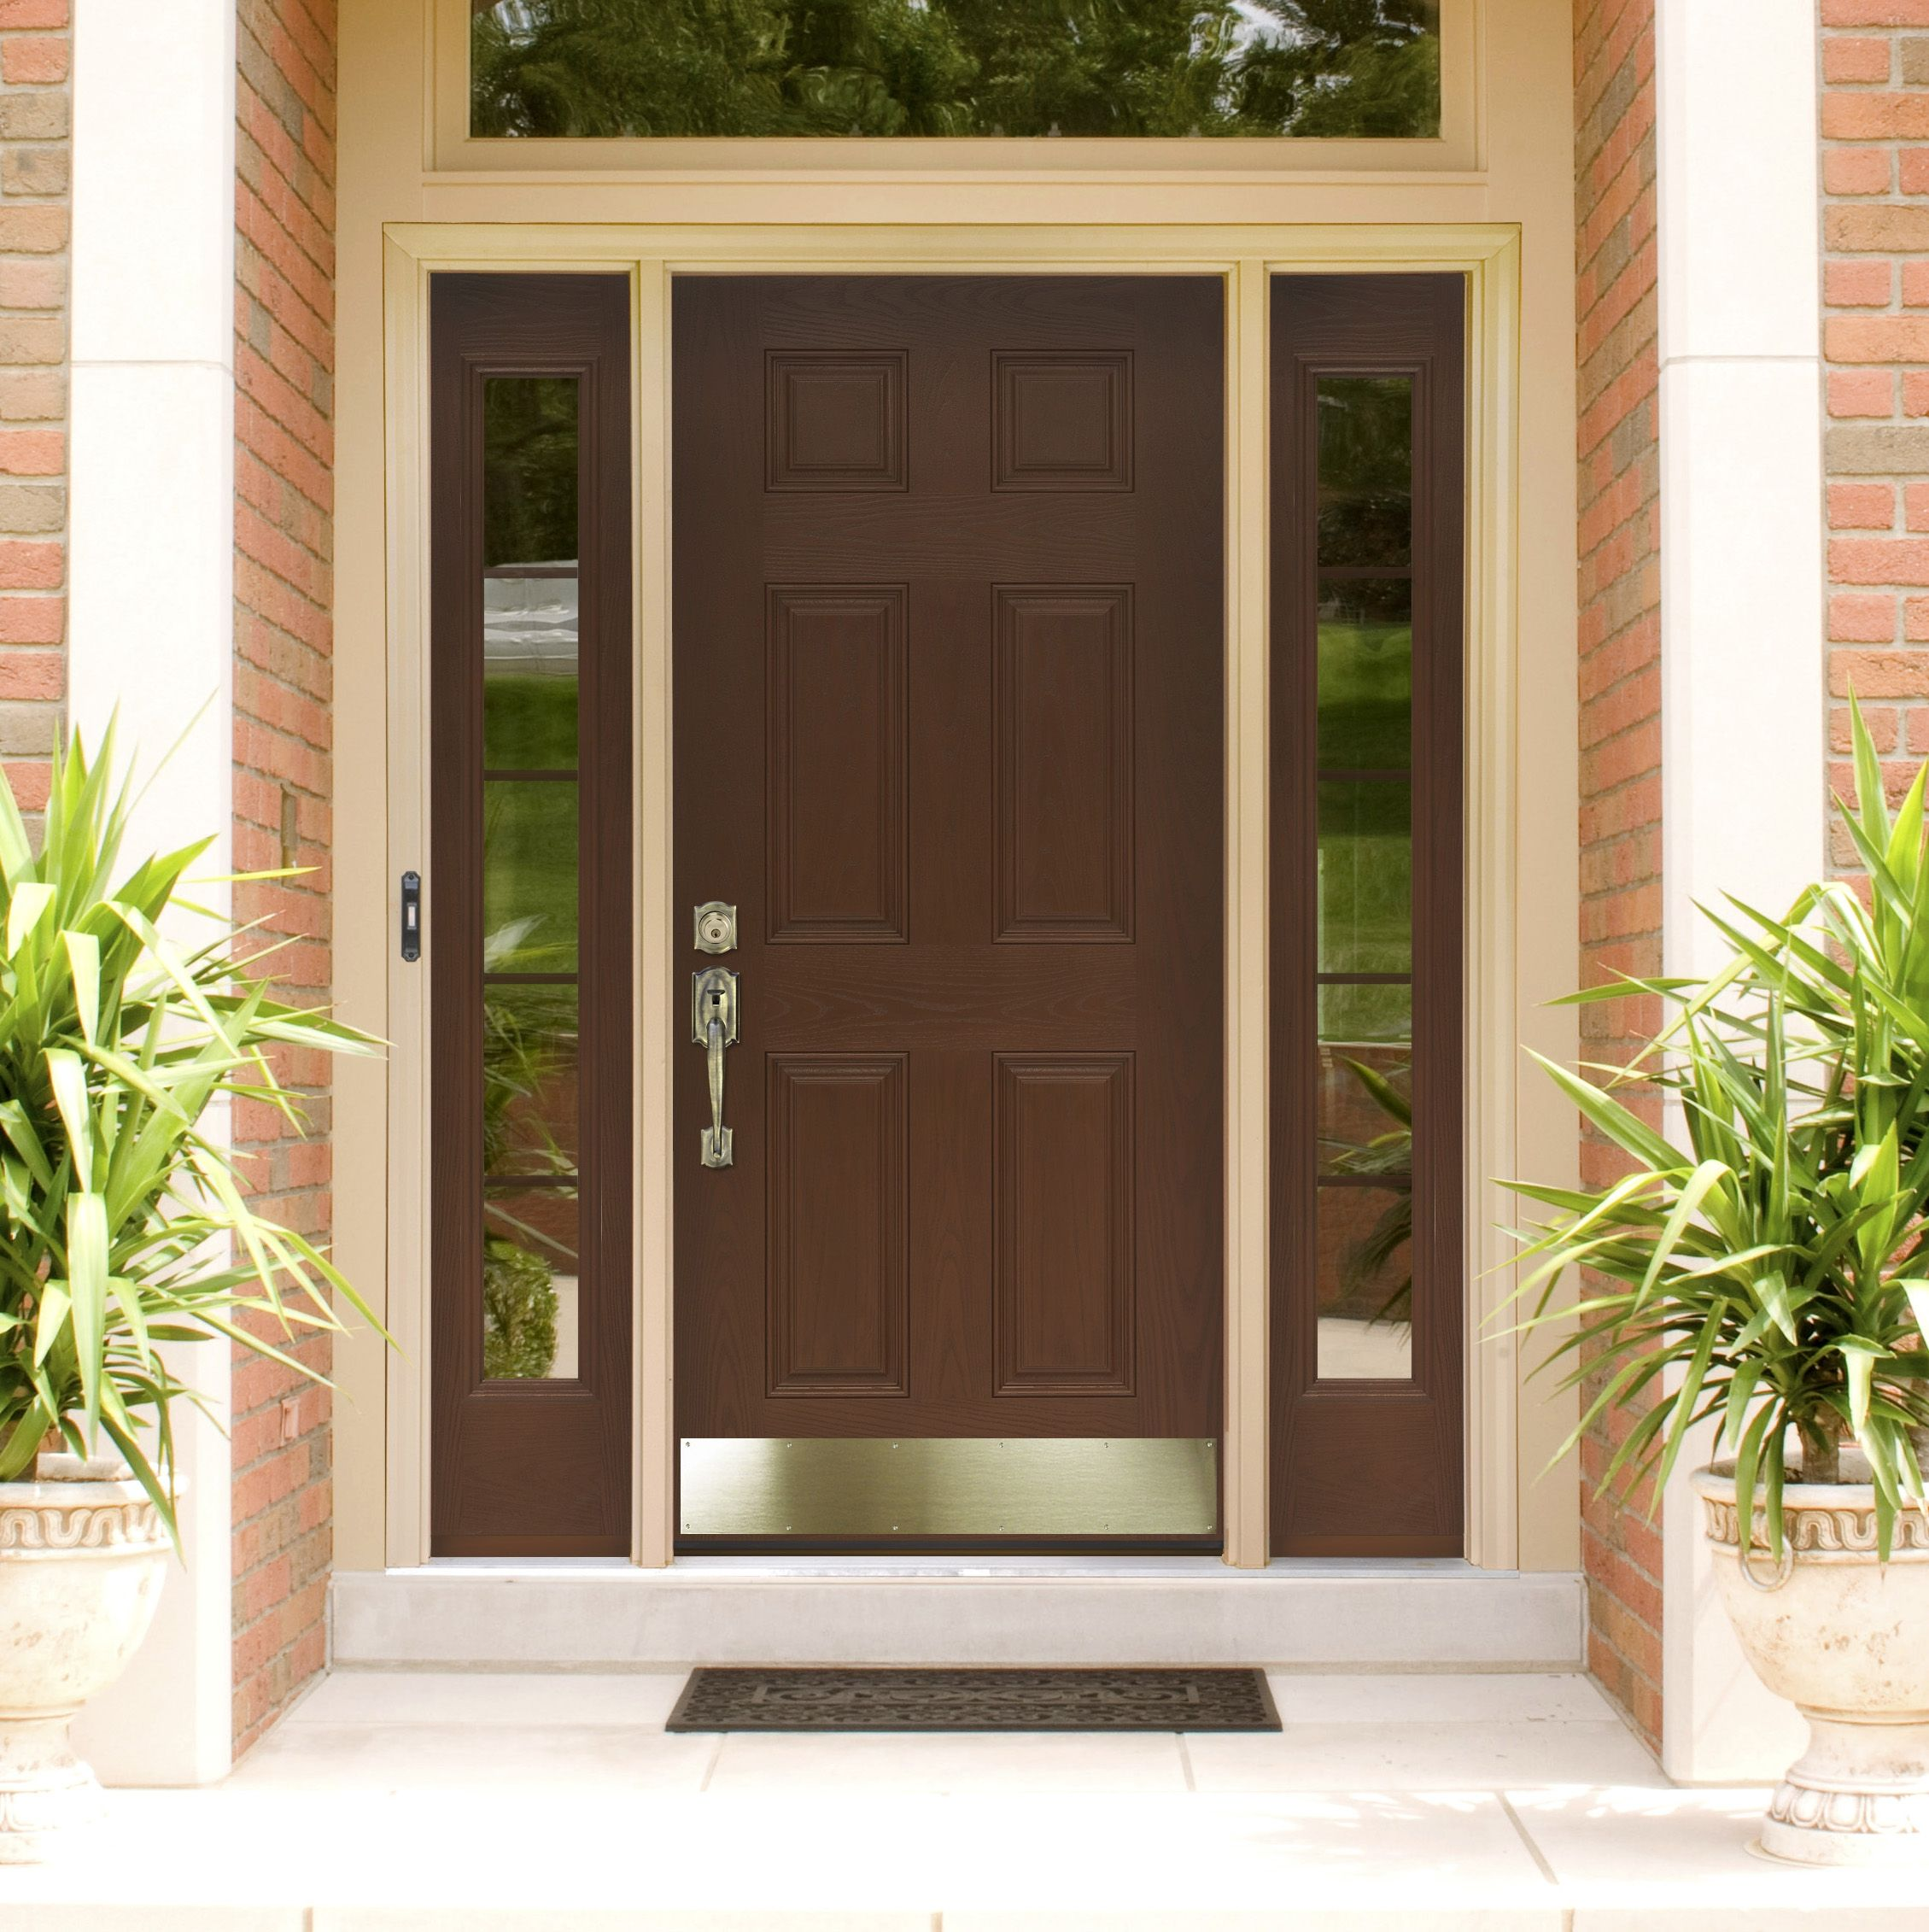 Front entry doors amp double doors in edmonton cambridge window - Exquisite Brown Mahogany 6 Panels Craftsman Single Modern Front Exquisite Brown Mahogany 6 Panels Craftsman Single